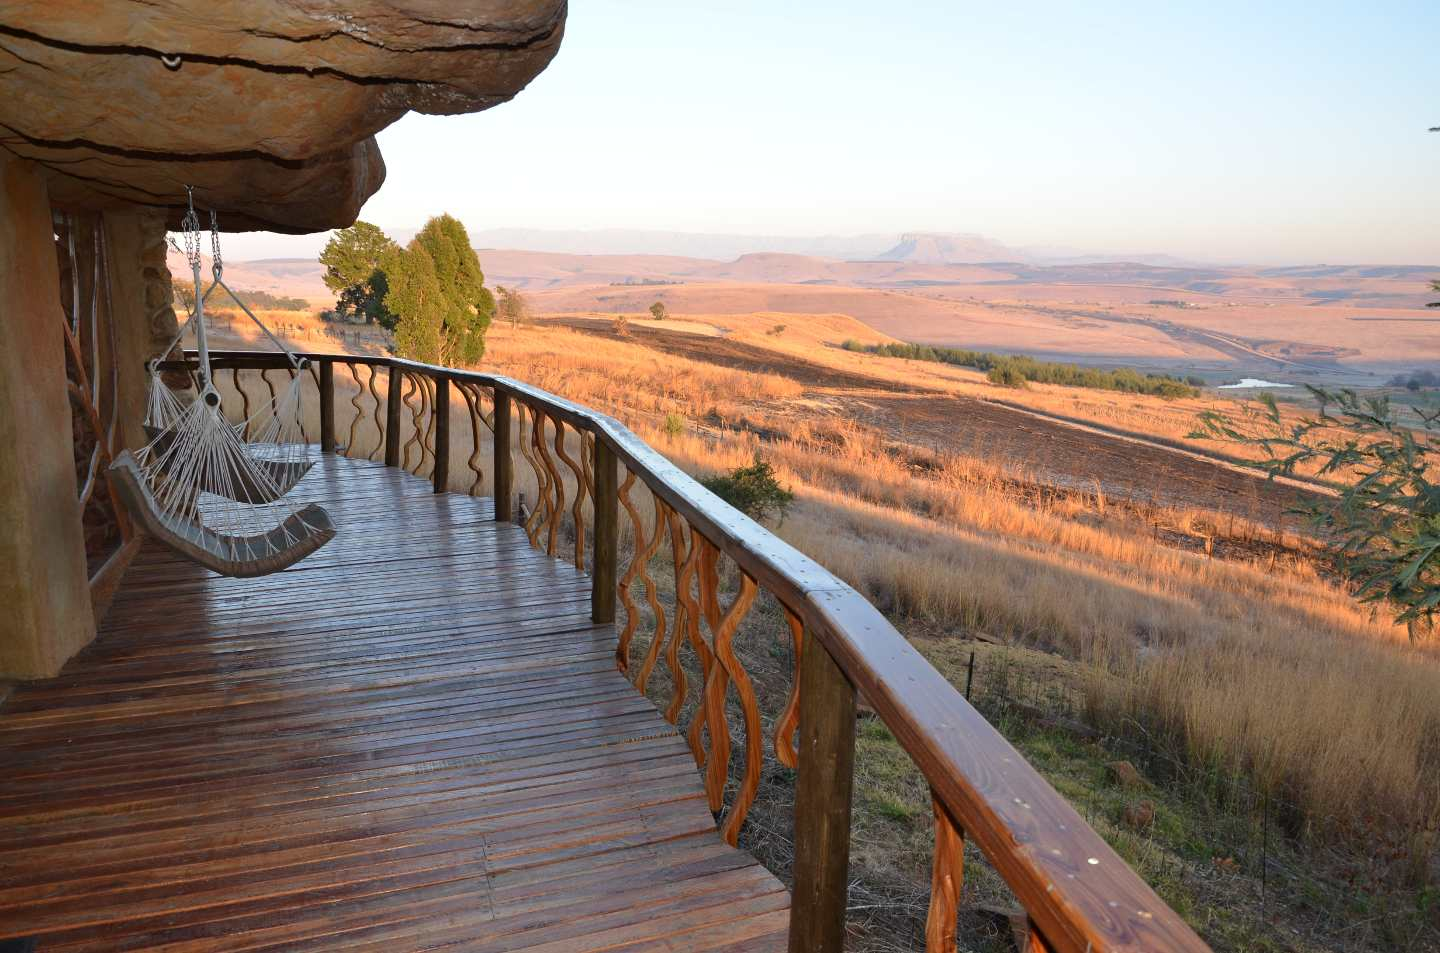 Antbear Lodge Drakensberg South Africa